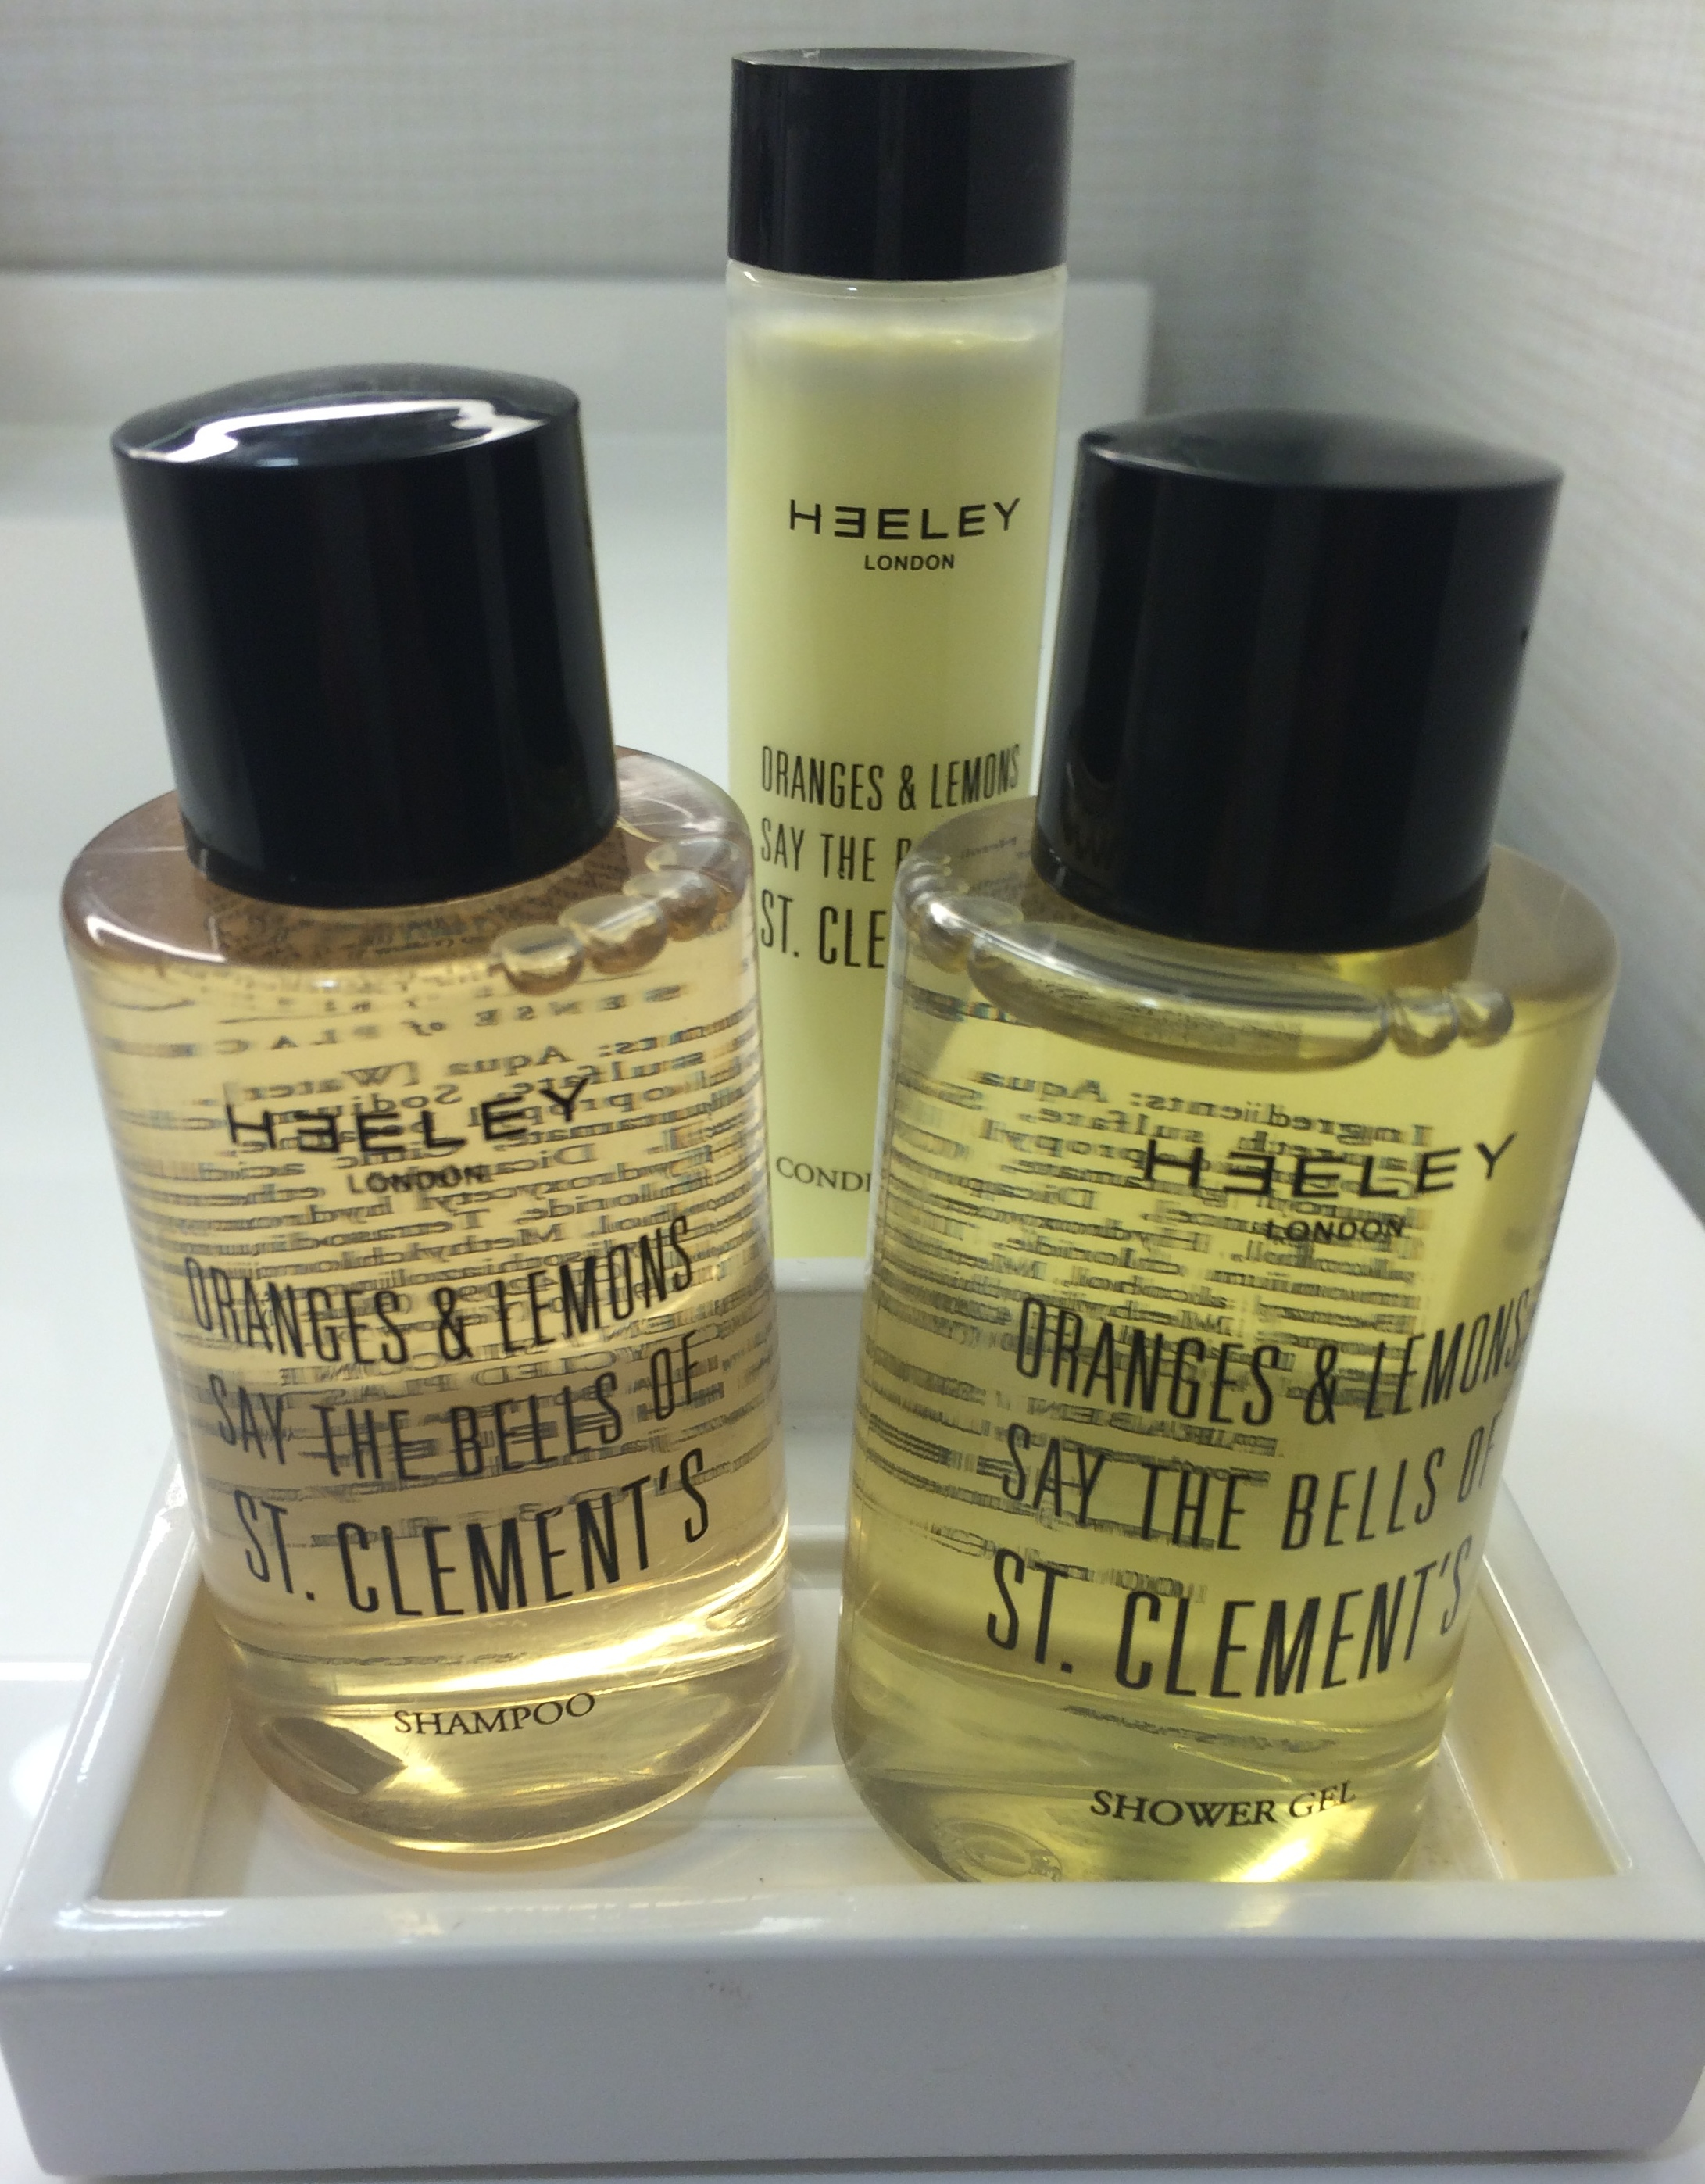 Bathroom Amenities bathroom amenities to feel at home | building the godfrey hotel